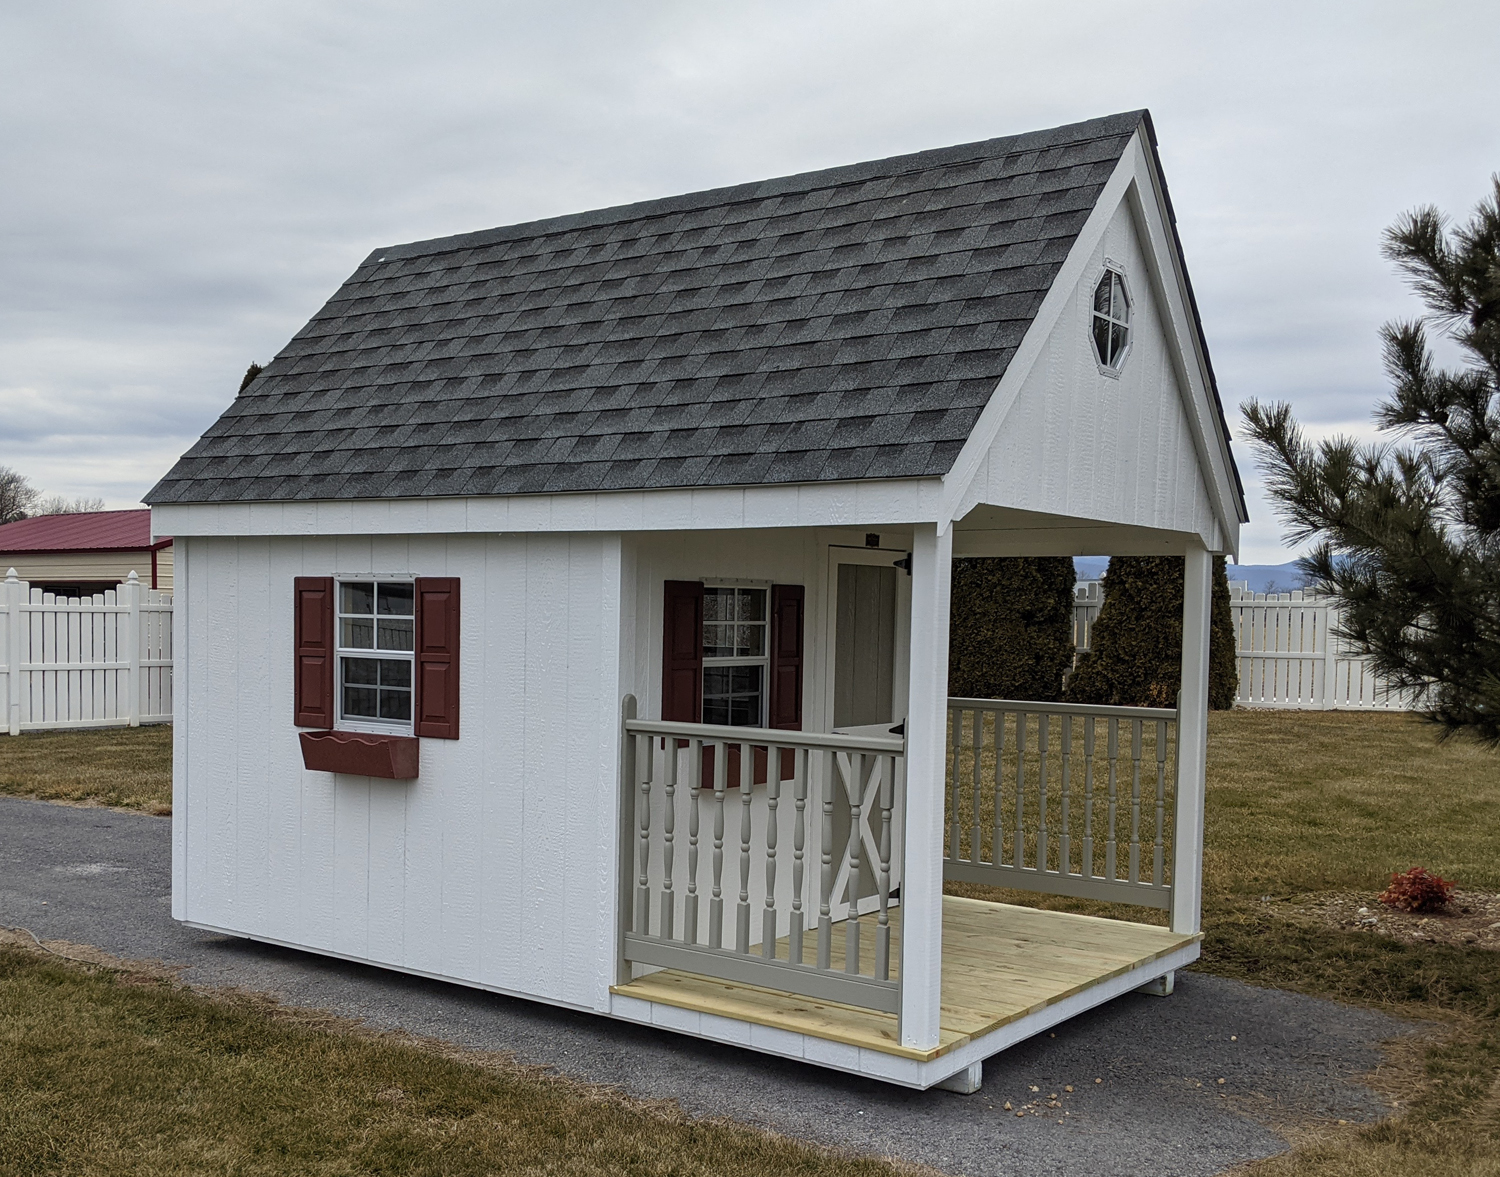 White shed with red trim